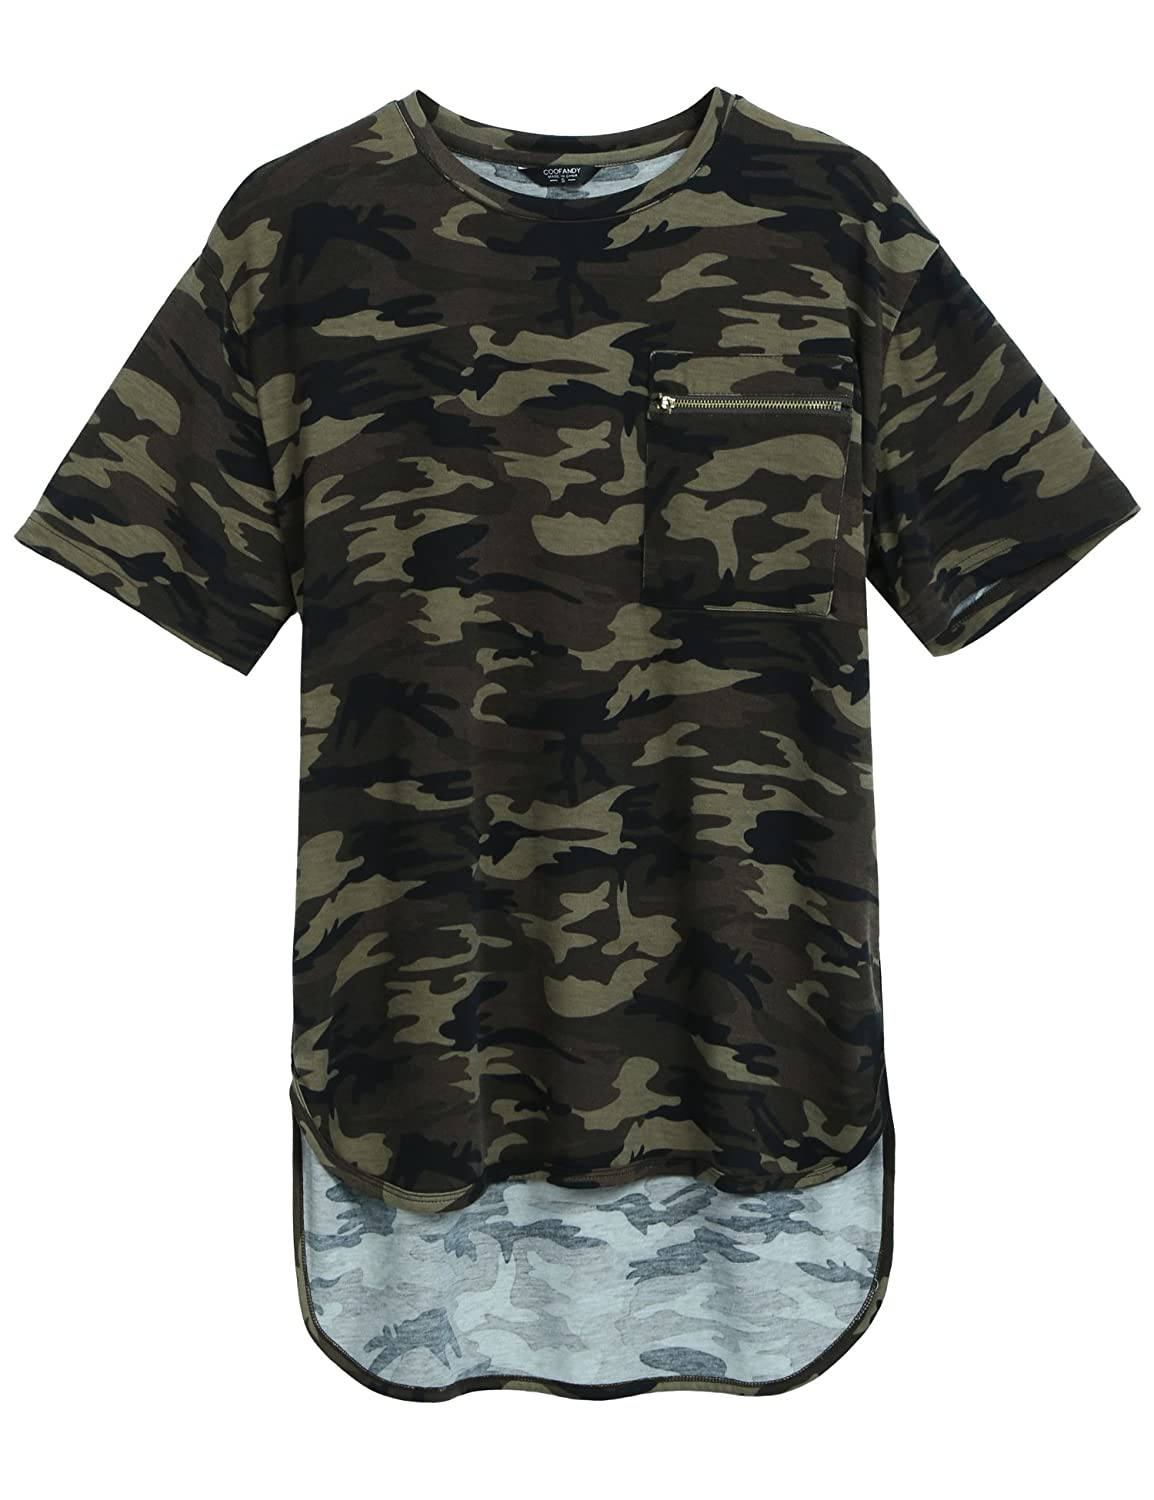 681293711 Made of ultra soft cotton to provide a comfortable, breathable,  lightweight, cool feel. 【STYLISH DESIGN】: Stylish longline fashion t shirt  / panel prints ...